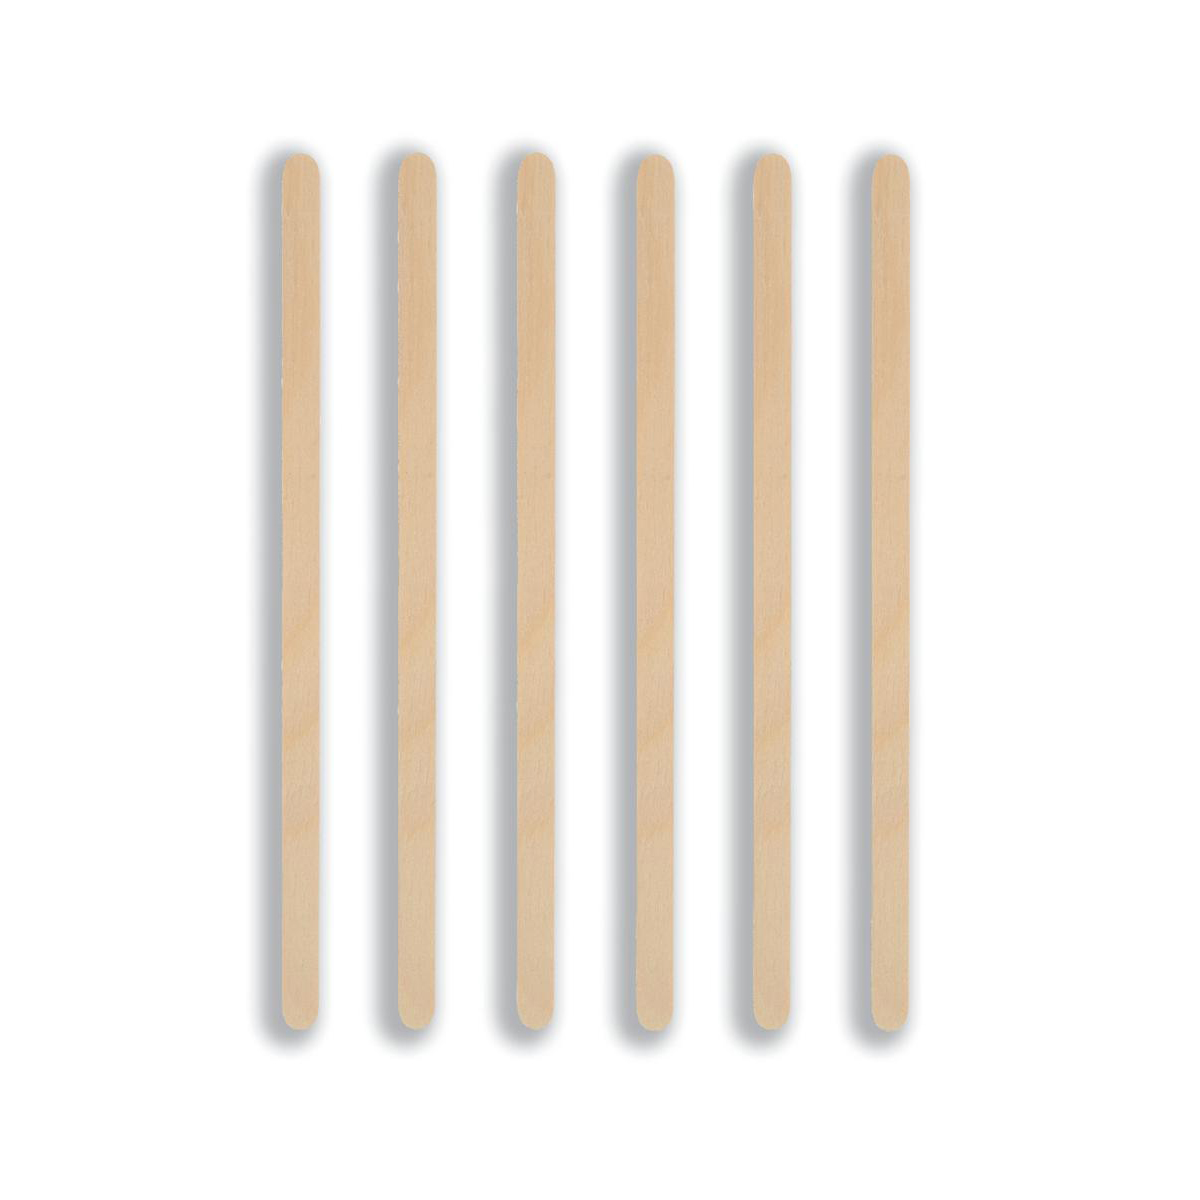 Drink Stirrers Wooden 140mm Ref 0512054 Pack 1000